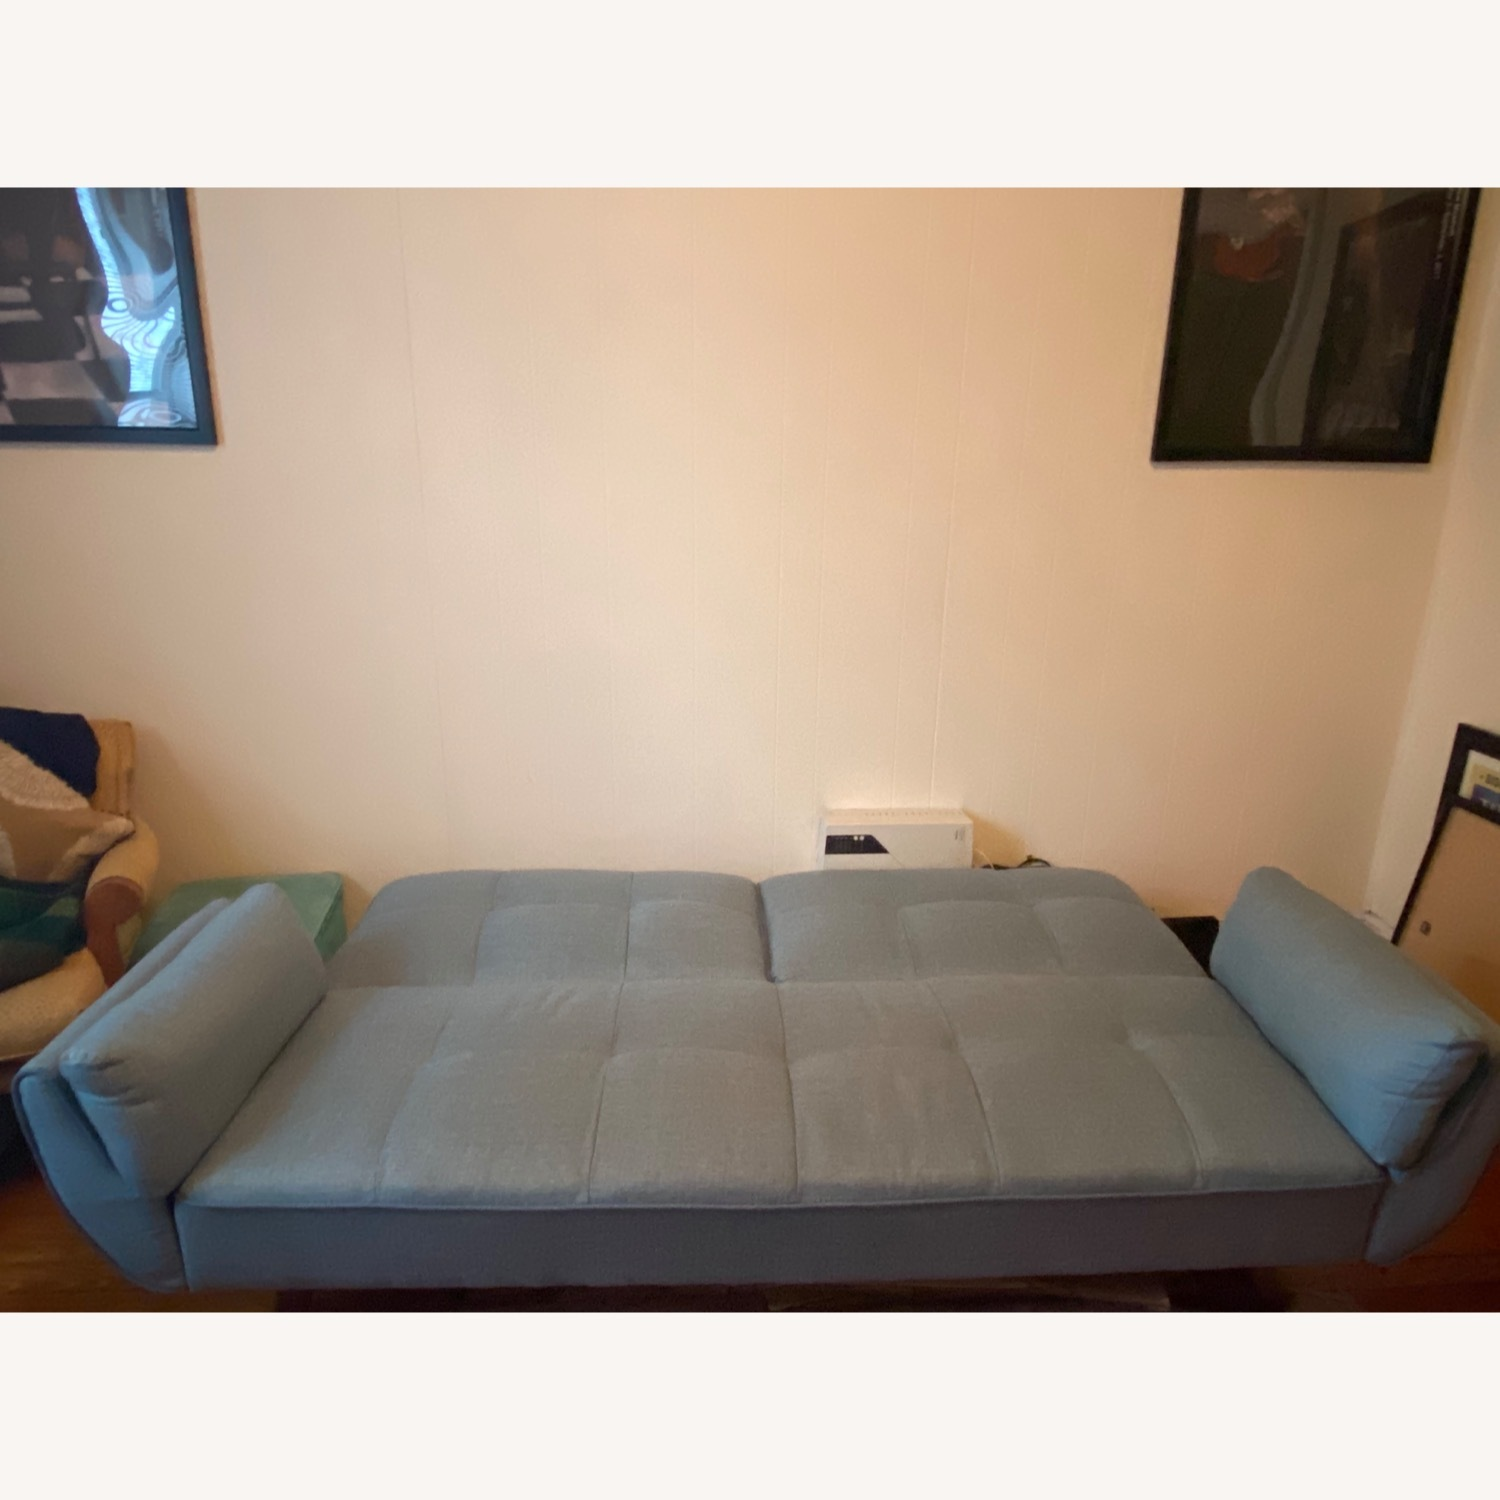 Mid Century Style Sofa Bed in Turquoise Fabric - image-2